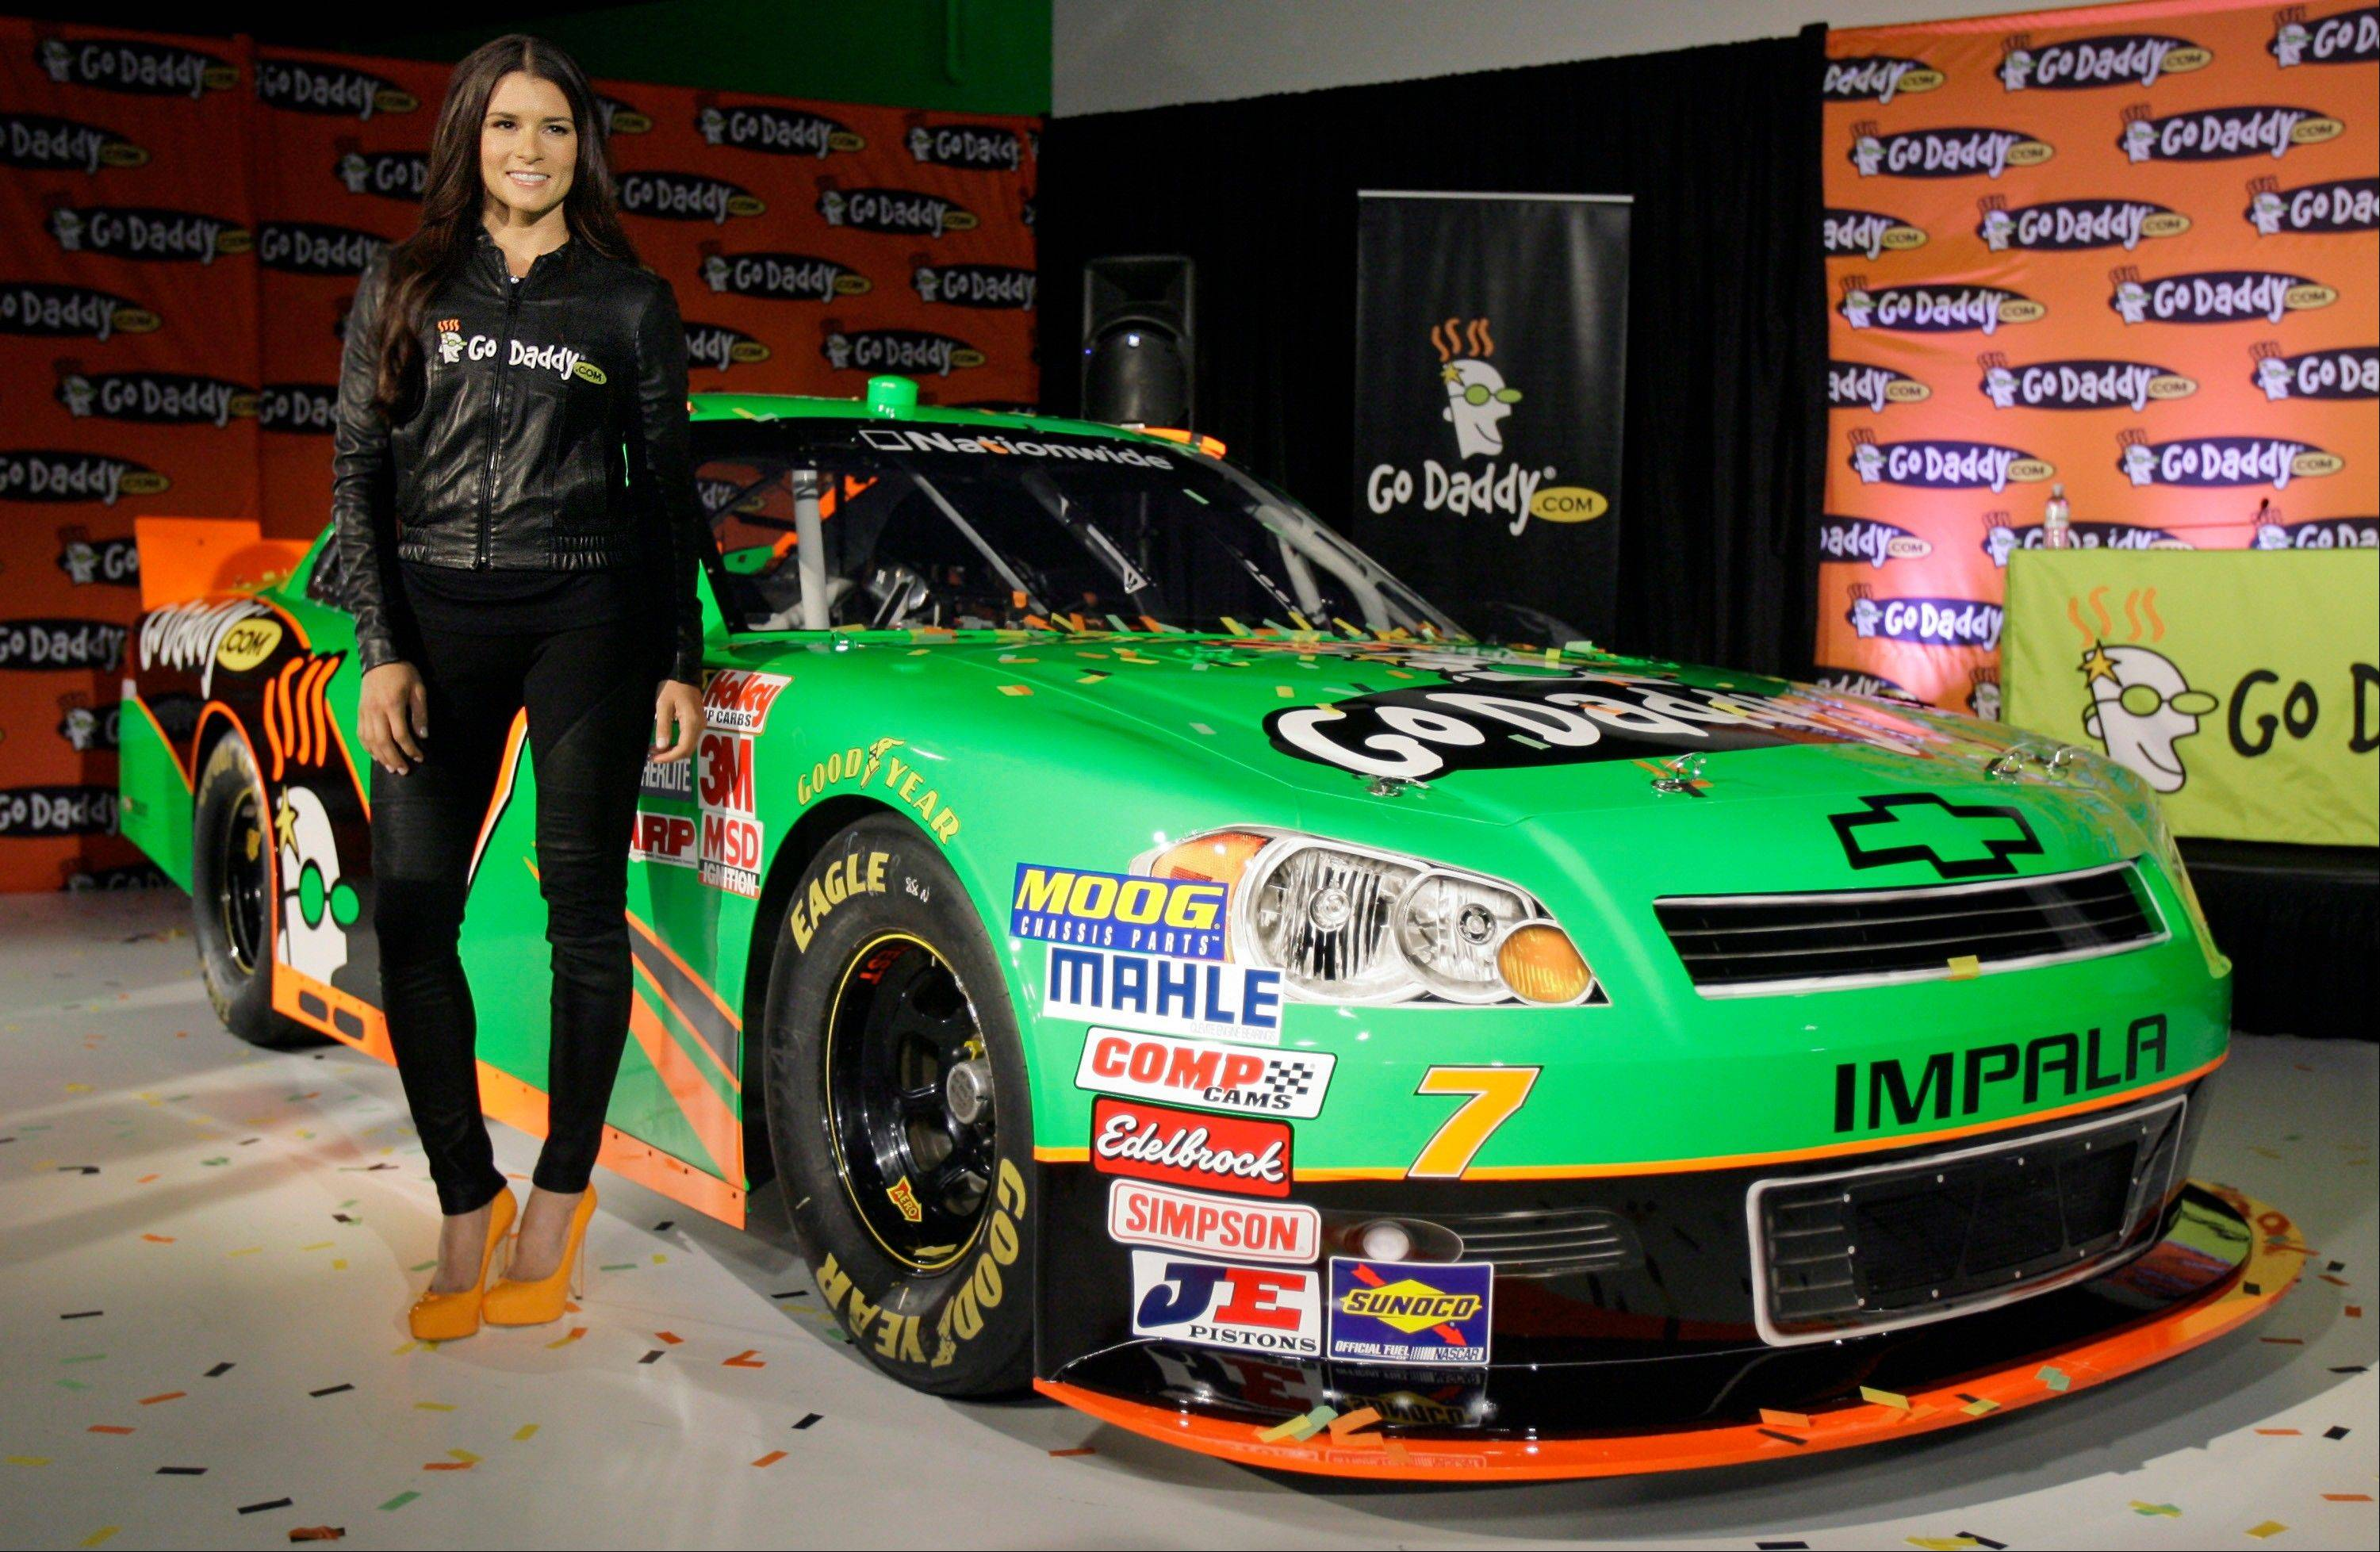 Driver Danica Patrick displays Thursday the car that she will drive full-time in the NASCAR Nationwide Series circuit and select Sprint Cup races. After months of skirting speculation, Patrick announced Thursday that she's leaving IndyCar in 2012 to run a full Nationwide schedule with JR Motorsports and up to 10 Sprint Cup races for Stewart-Haas Racing.